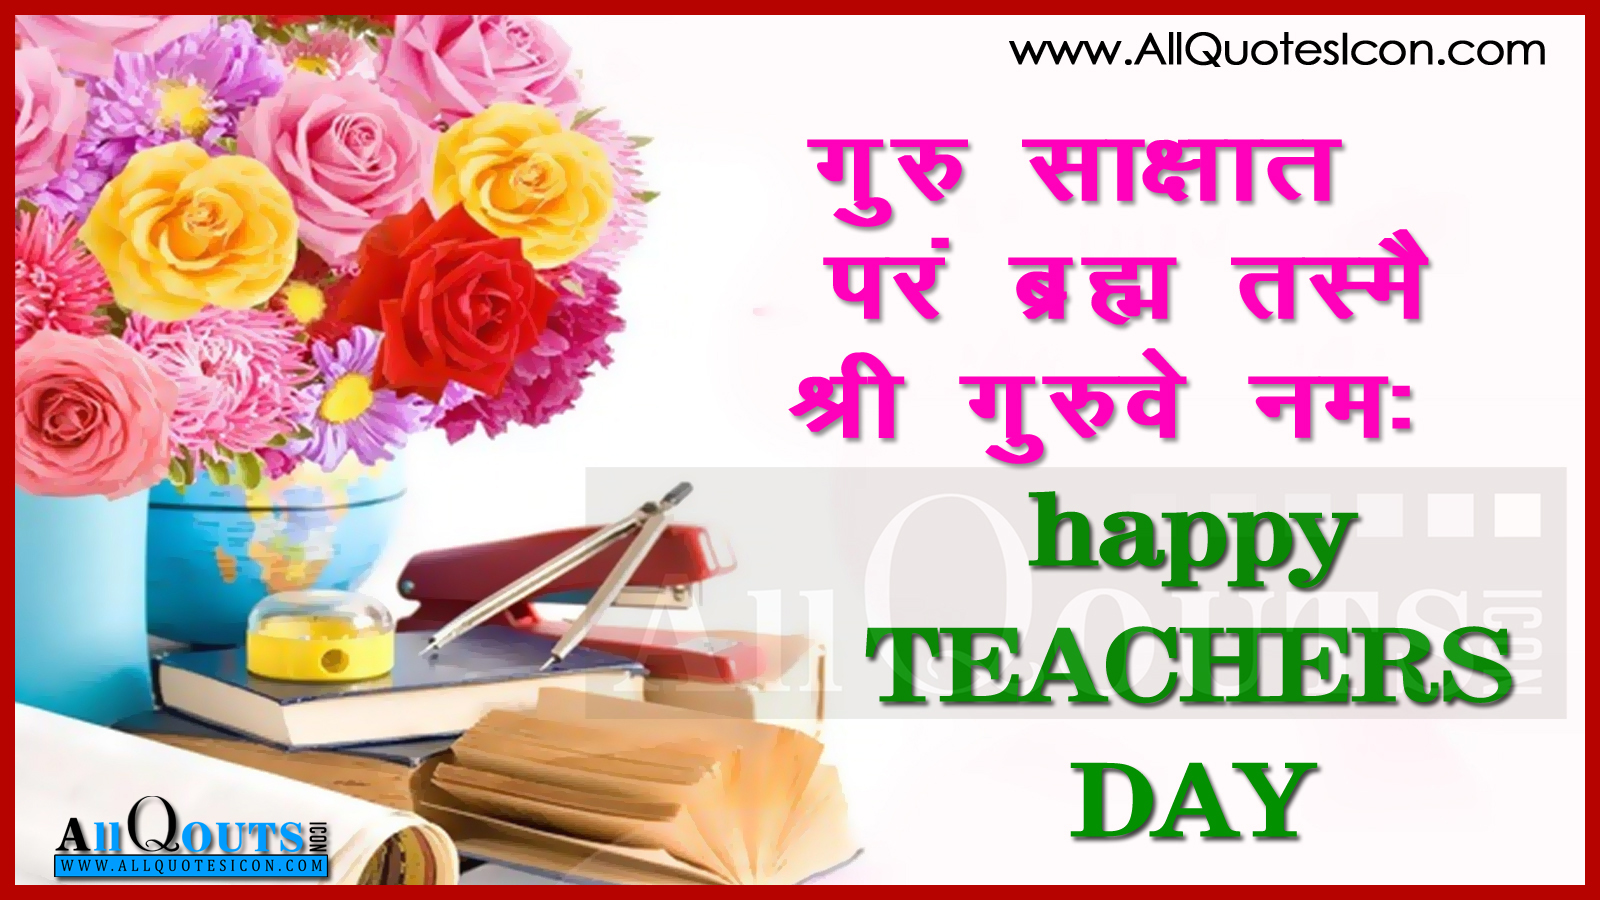 Best teachers day hindi quotations hd wallpapers happy teachers day best teachers day hindi quotations hd wallpapers happy teachers day greetings hindi shayari images kristyandbryce Choice Image